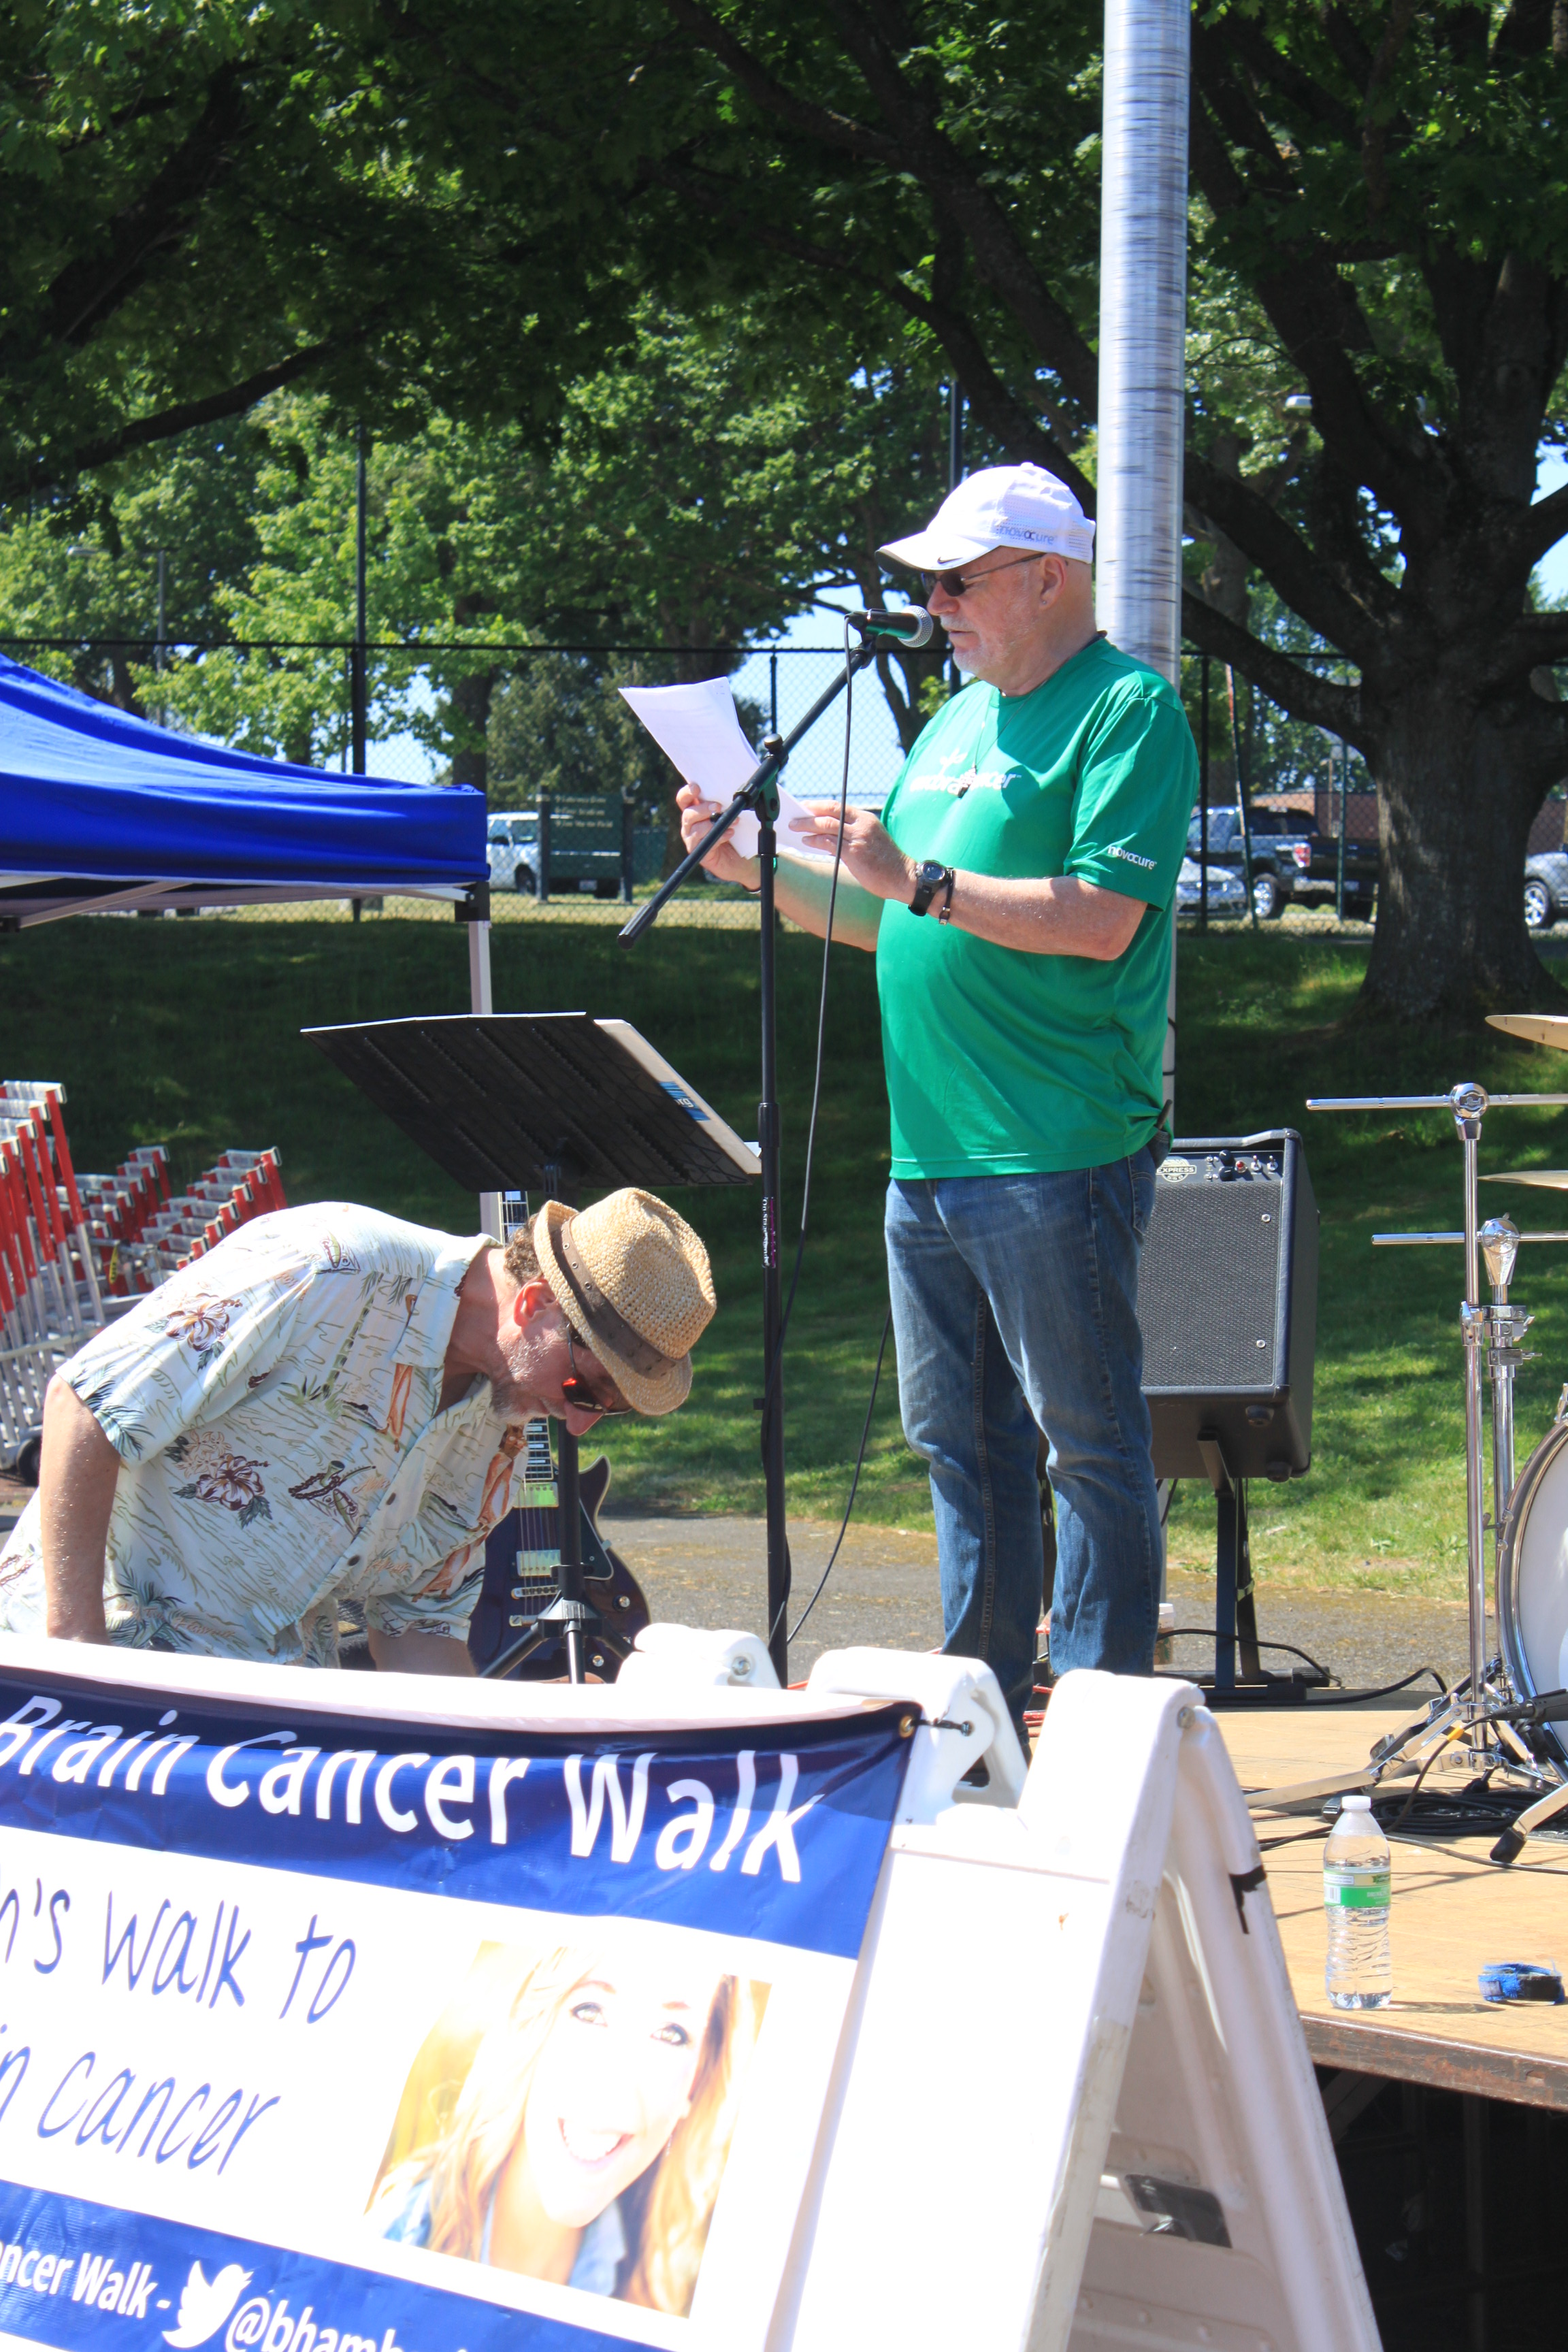 2015 Bham Brain CA Walk (1)